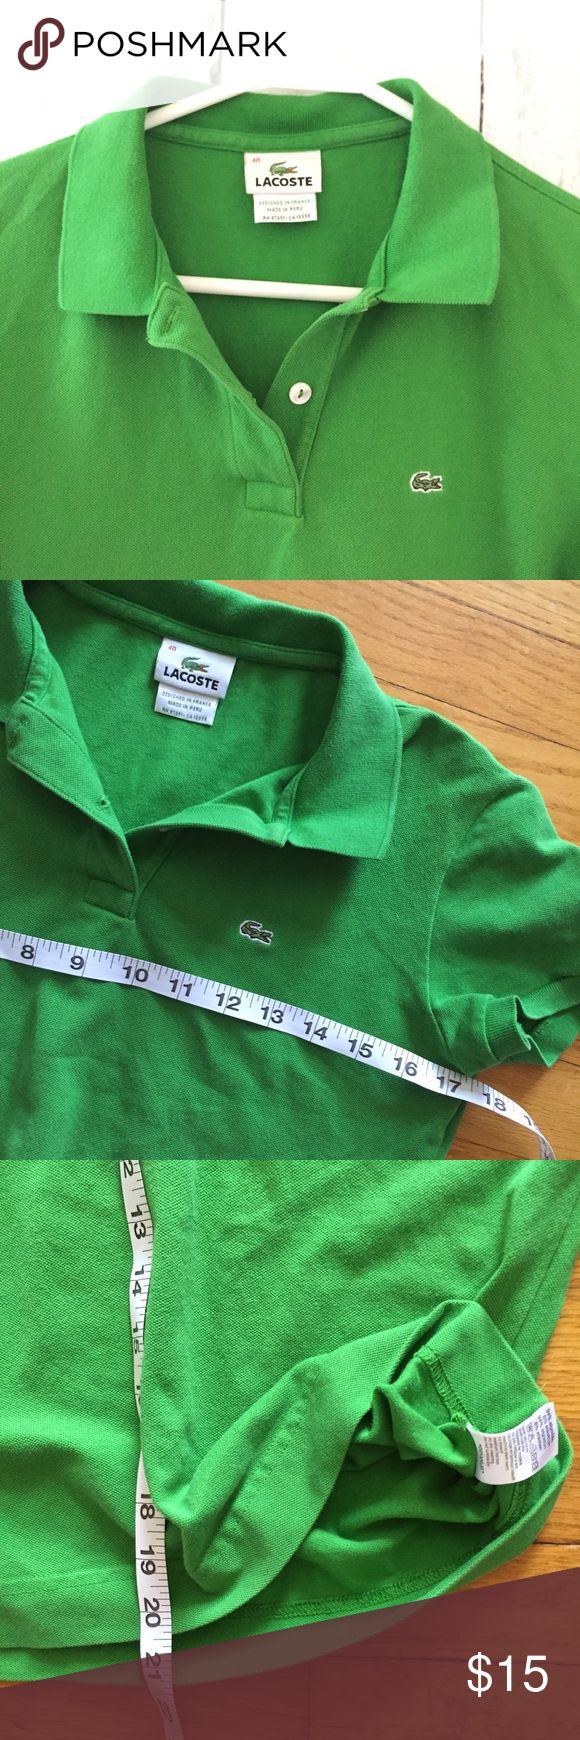 Lacoste Sz 40 medium lime green polo shirt Great condition!! Measurments are posted on the pictures Lacoste Tops Blouses